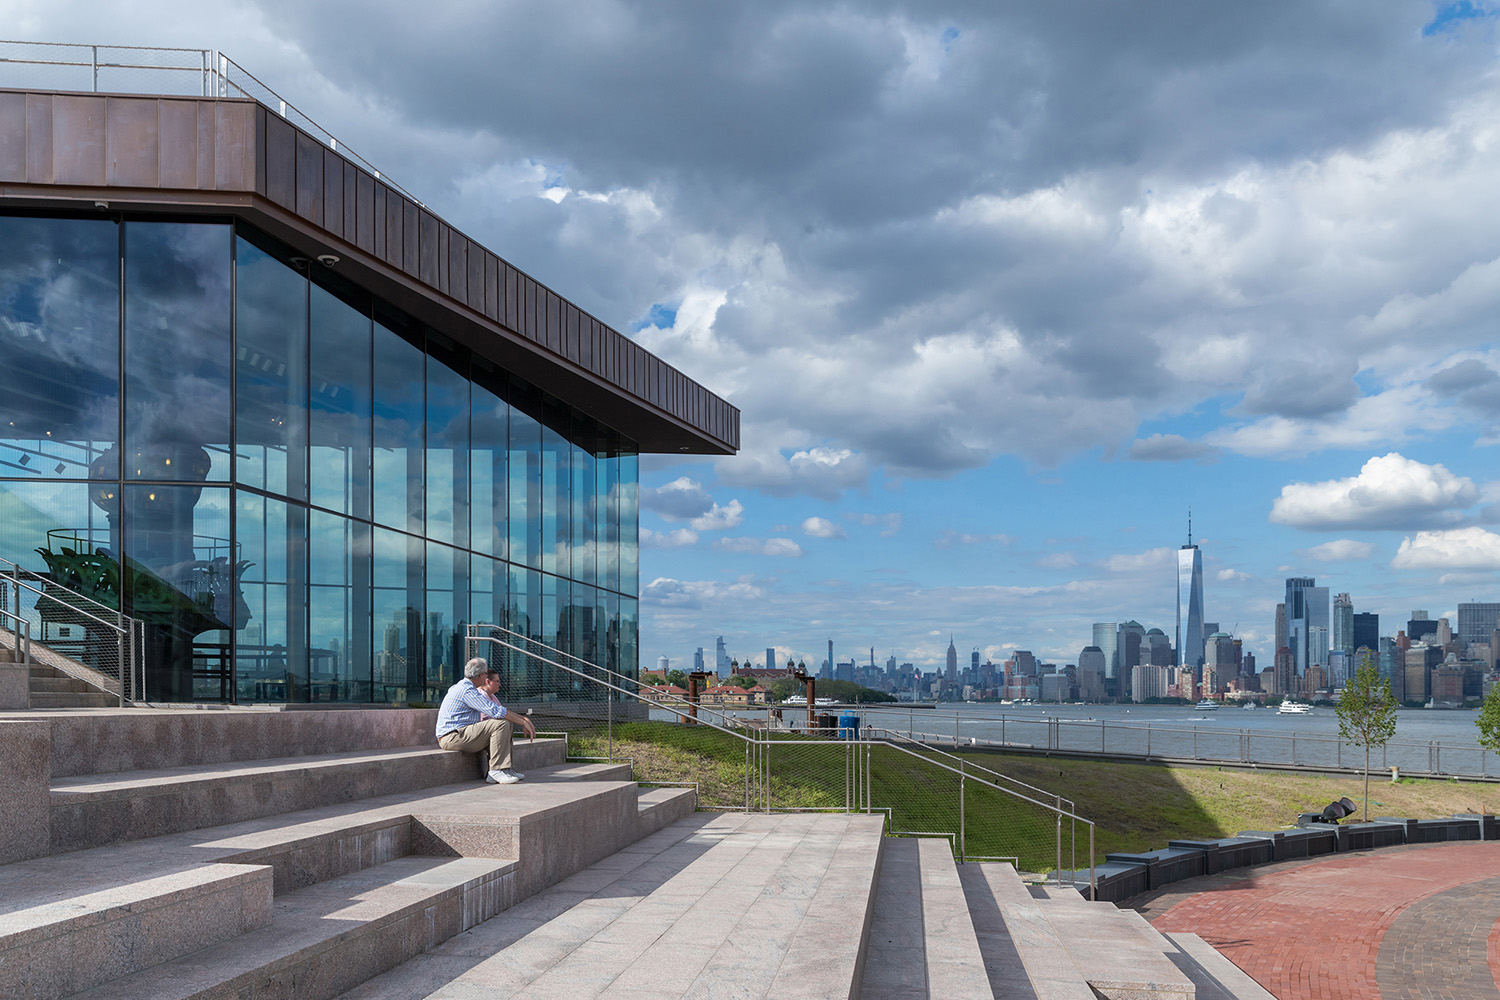 Granite steps provide space for sitting and resting, with a view toward Manhattan. Copyright Iwan Baan